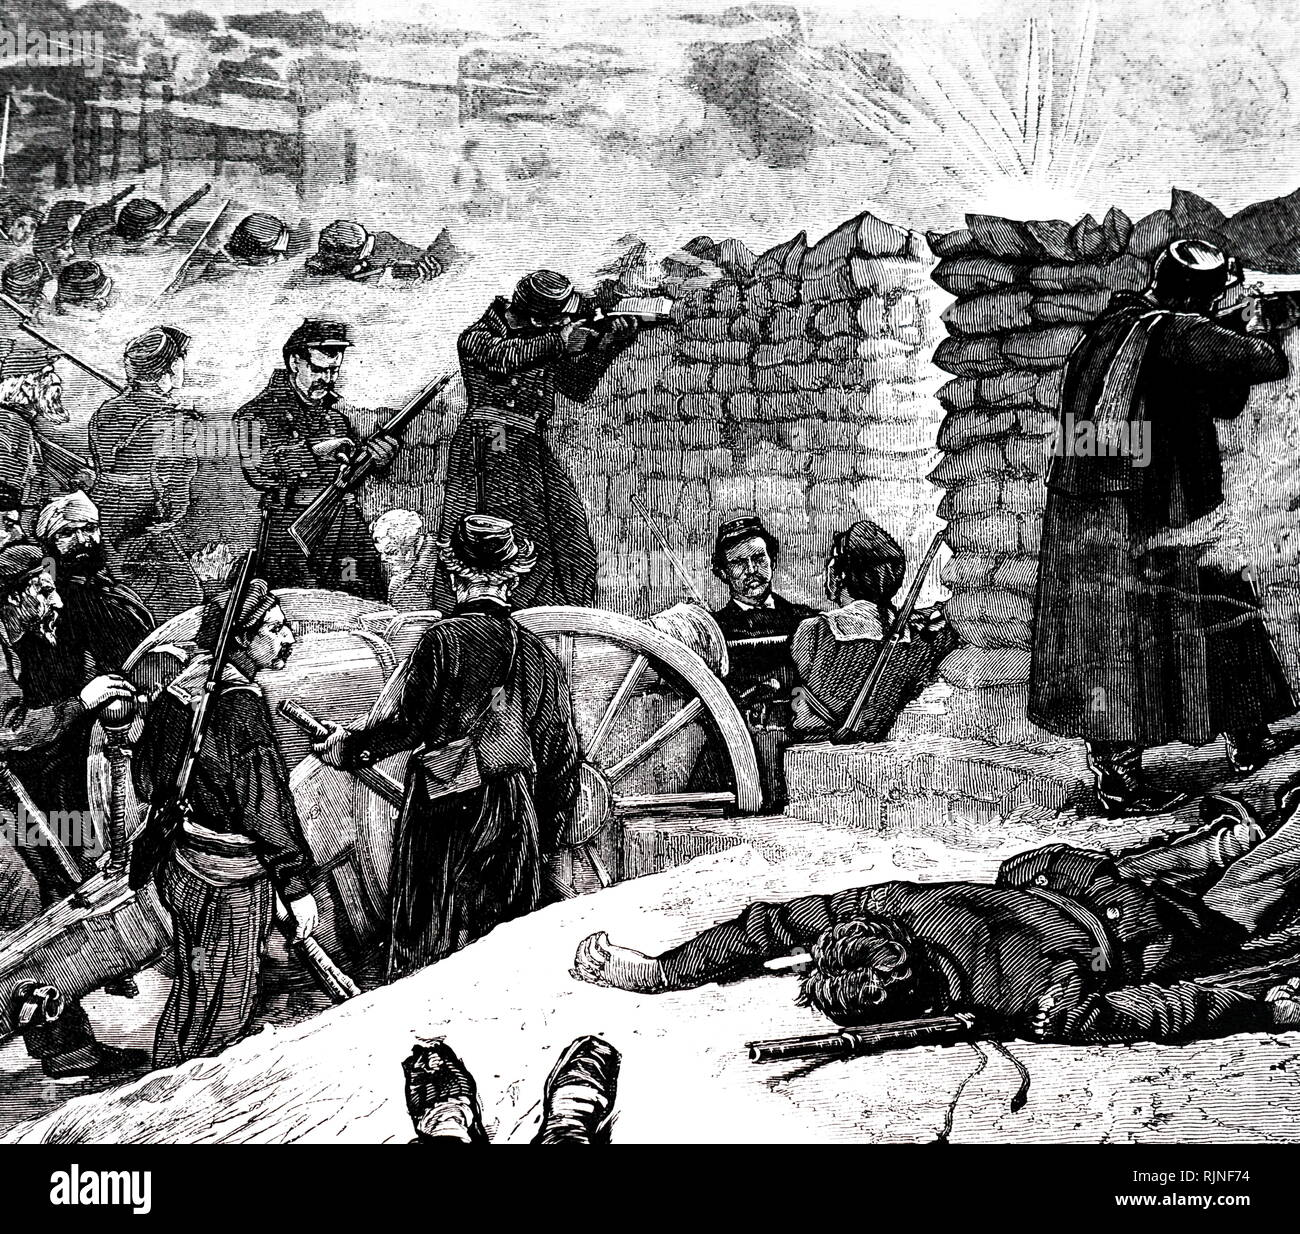 An engraving depicting the Paris Commune - the last stand of the Communards at the barricades. Dated 19th century - Stock Image